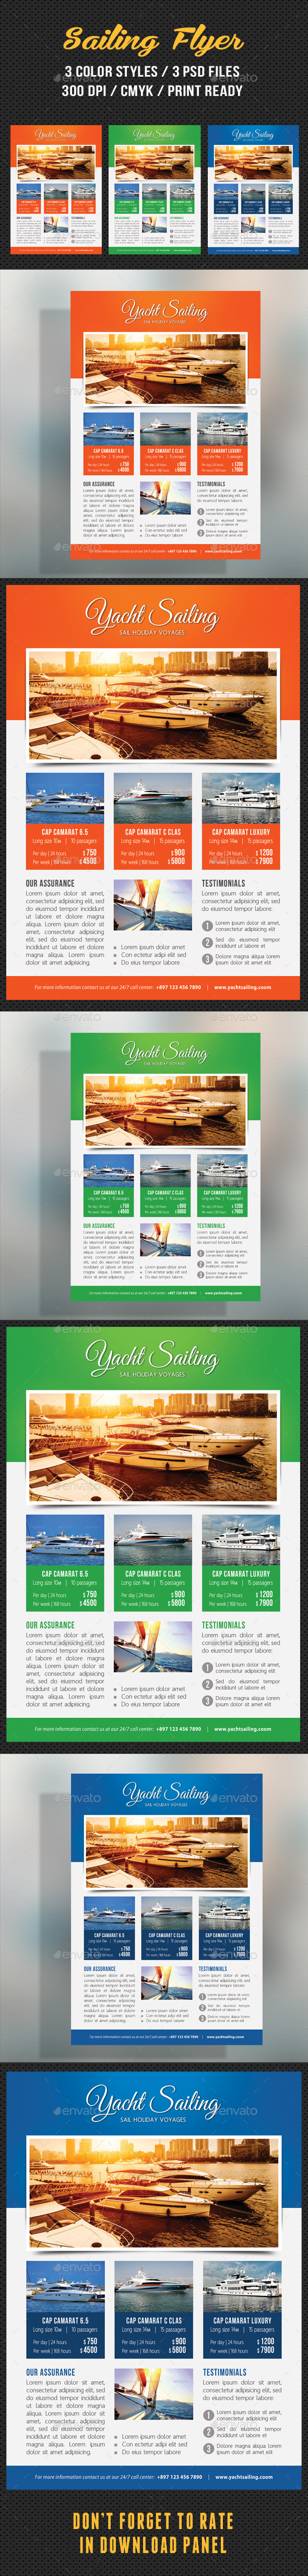 GraphicRiver Sailing Yacht Travel Flyer 03 10275528